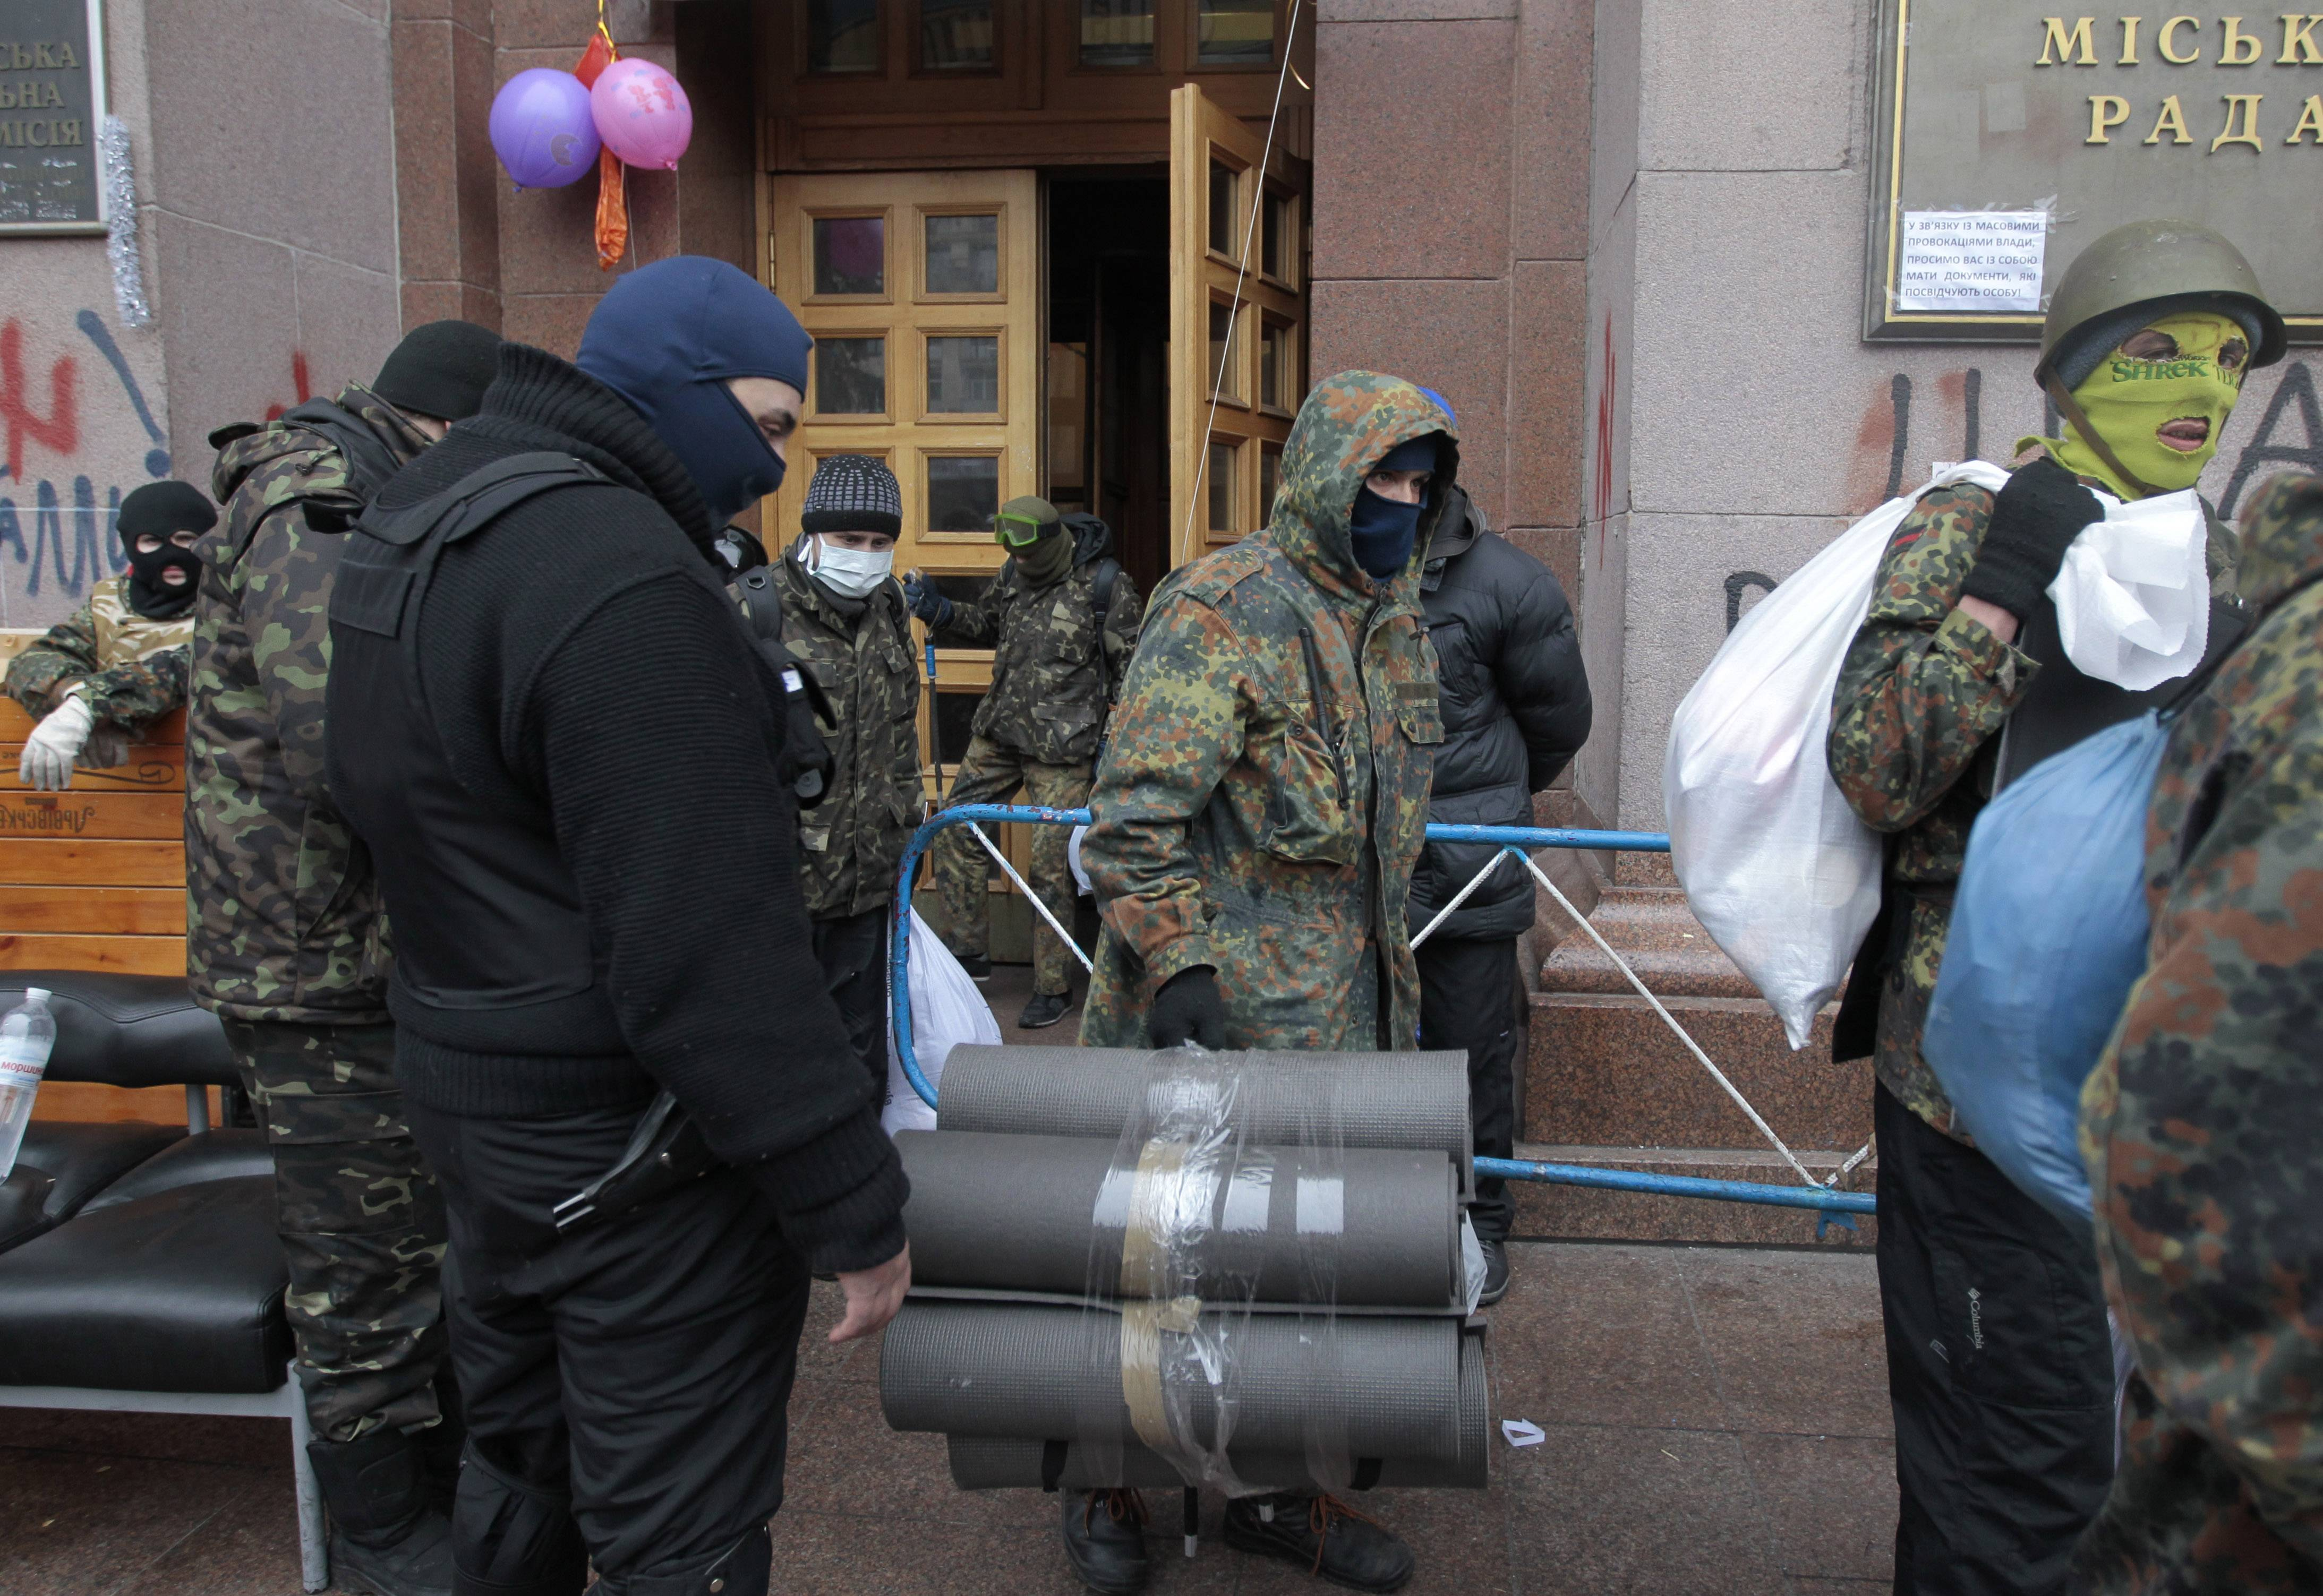 Opposition supporters leave Kiev City Hall in Kiev, Ukraine on Sunday. Anti-government demonstrators in Ukraine's capital ended their nearly three-month occupation of Kiev City Hall on Sunday as promised in exchange for the release of all jailed protesters. But tensions remained high as hundreds stayed outside the building, vowing to retake it if the government fails to drop all criminal charges against the protesters.